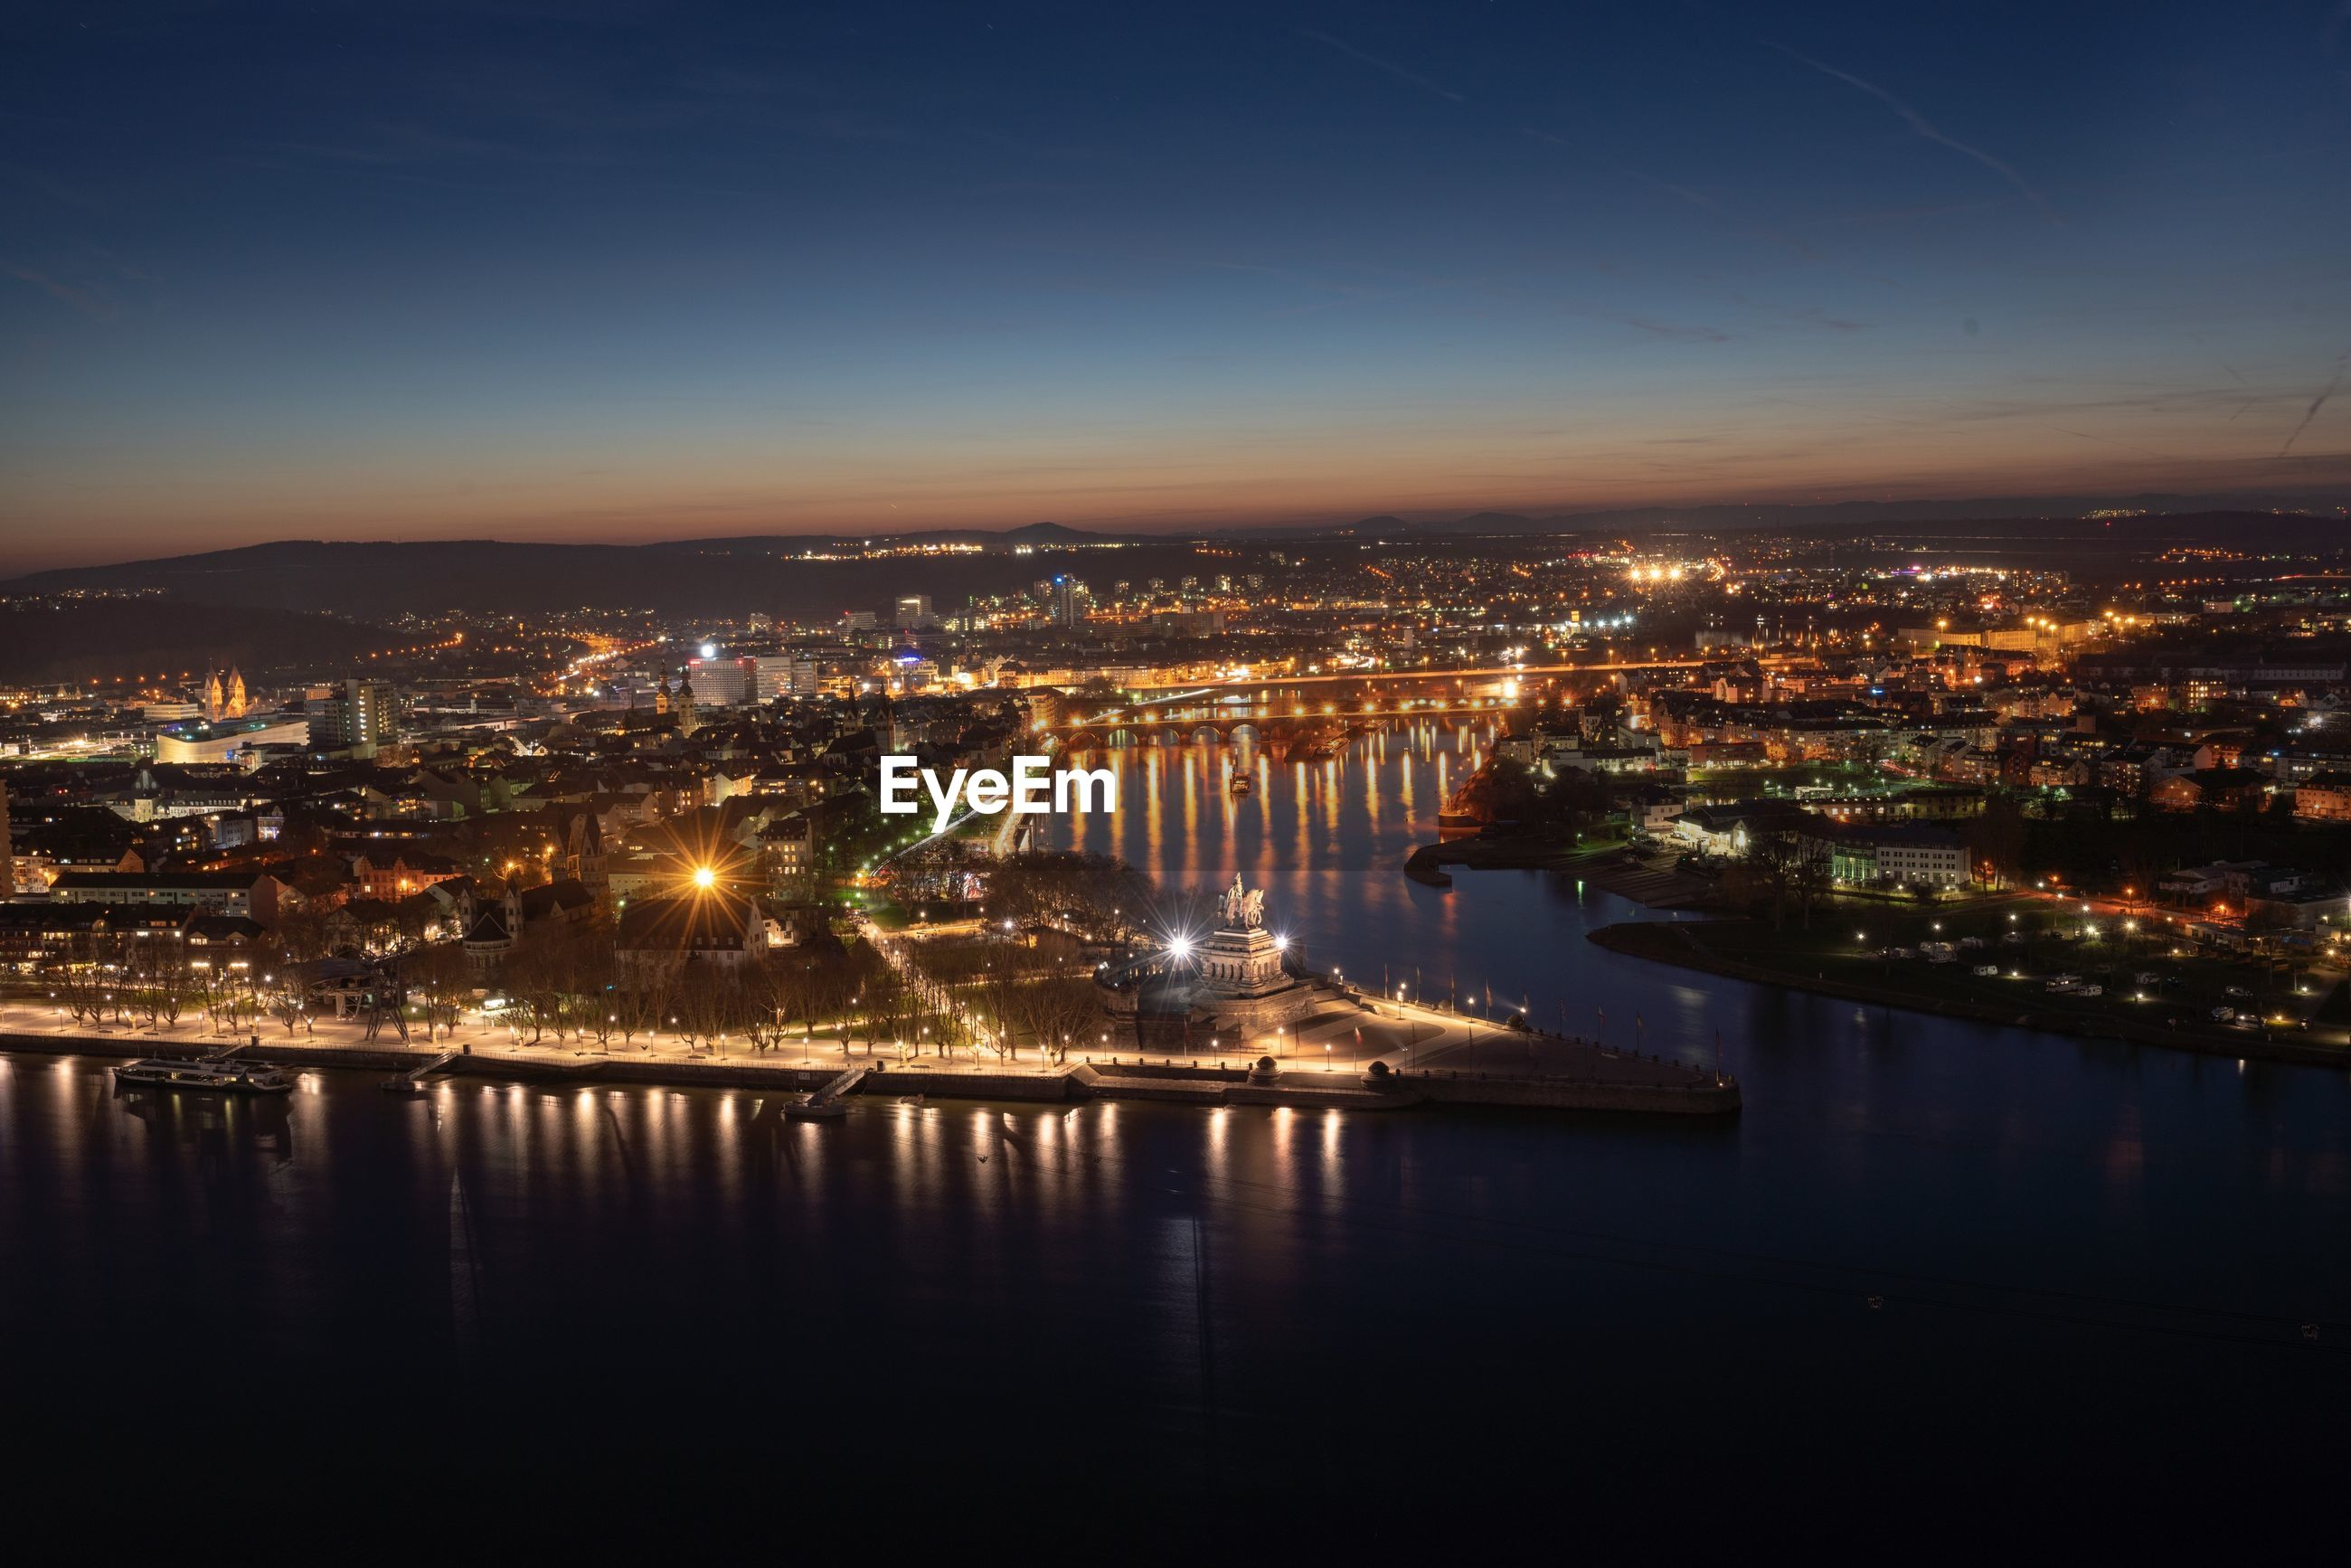 HIGH ANGLE VIEW OF ILLUMINATED CITY BY RIVER AGAINST SKY